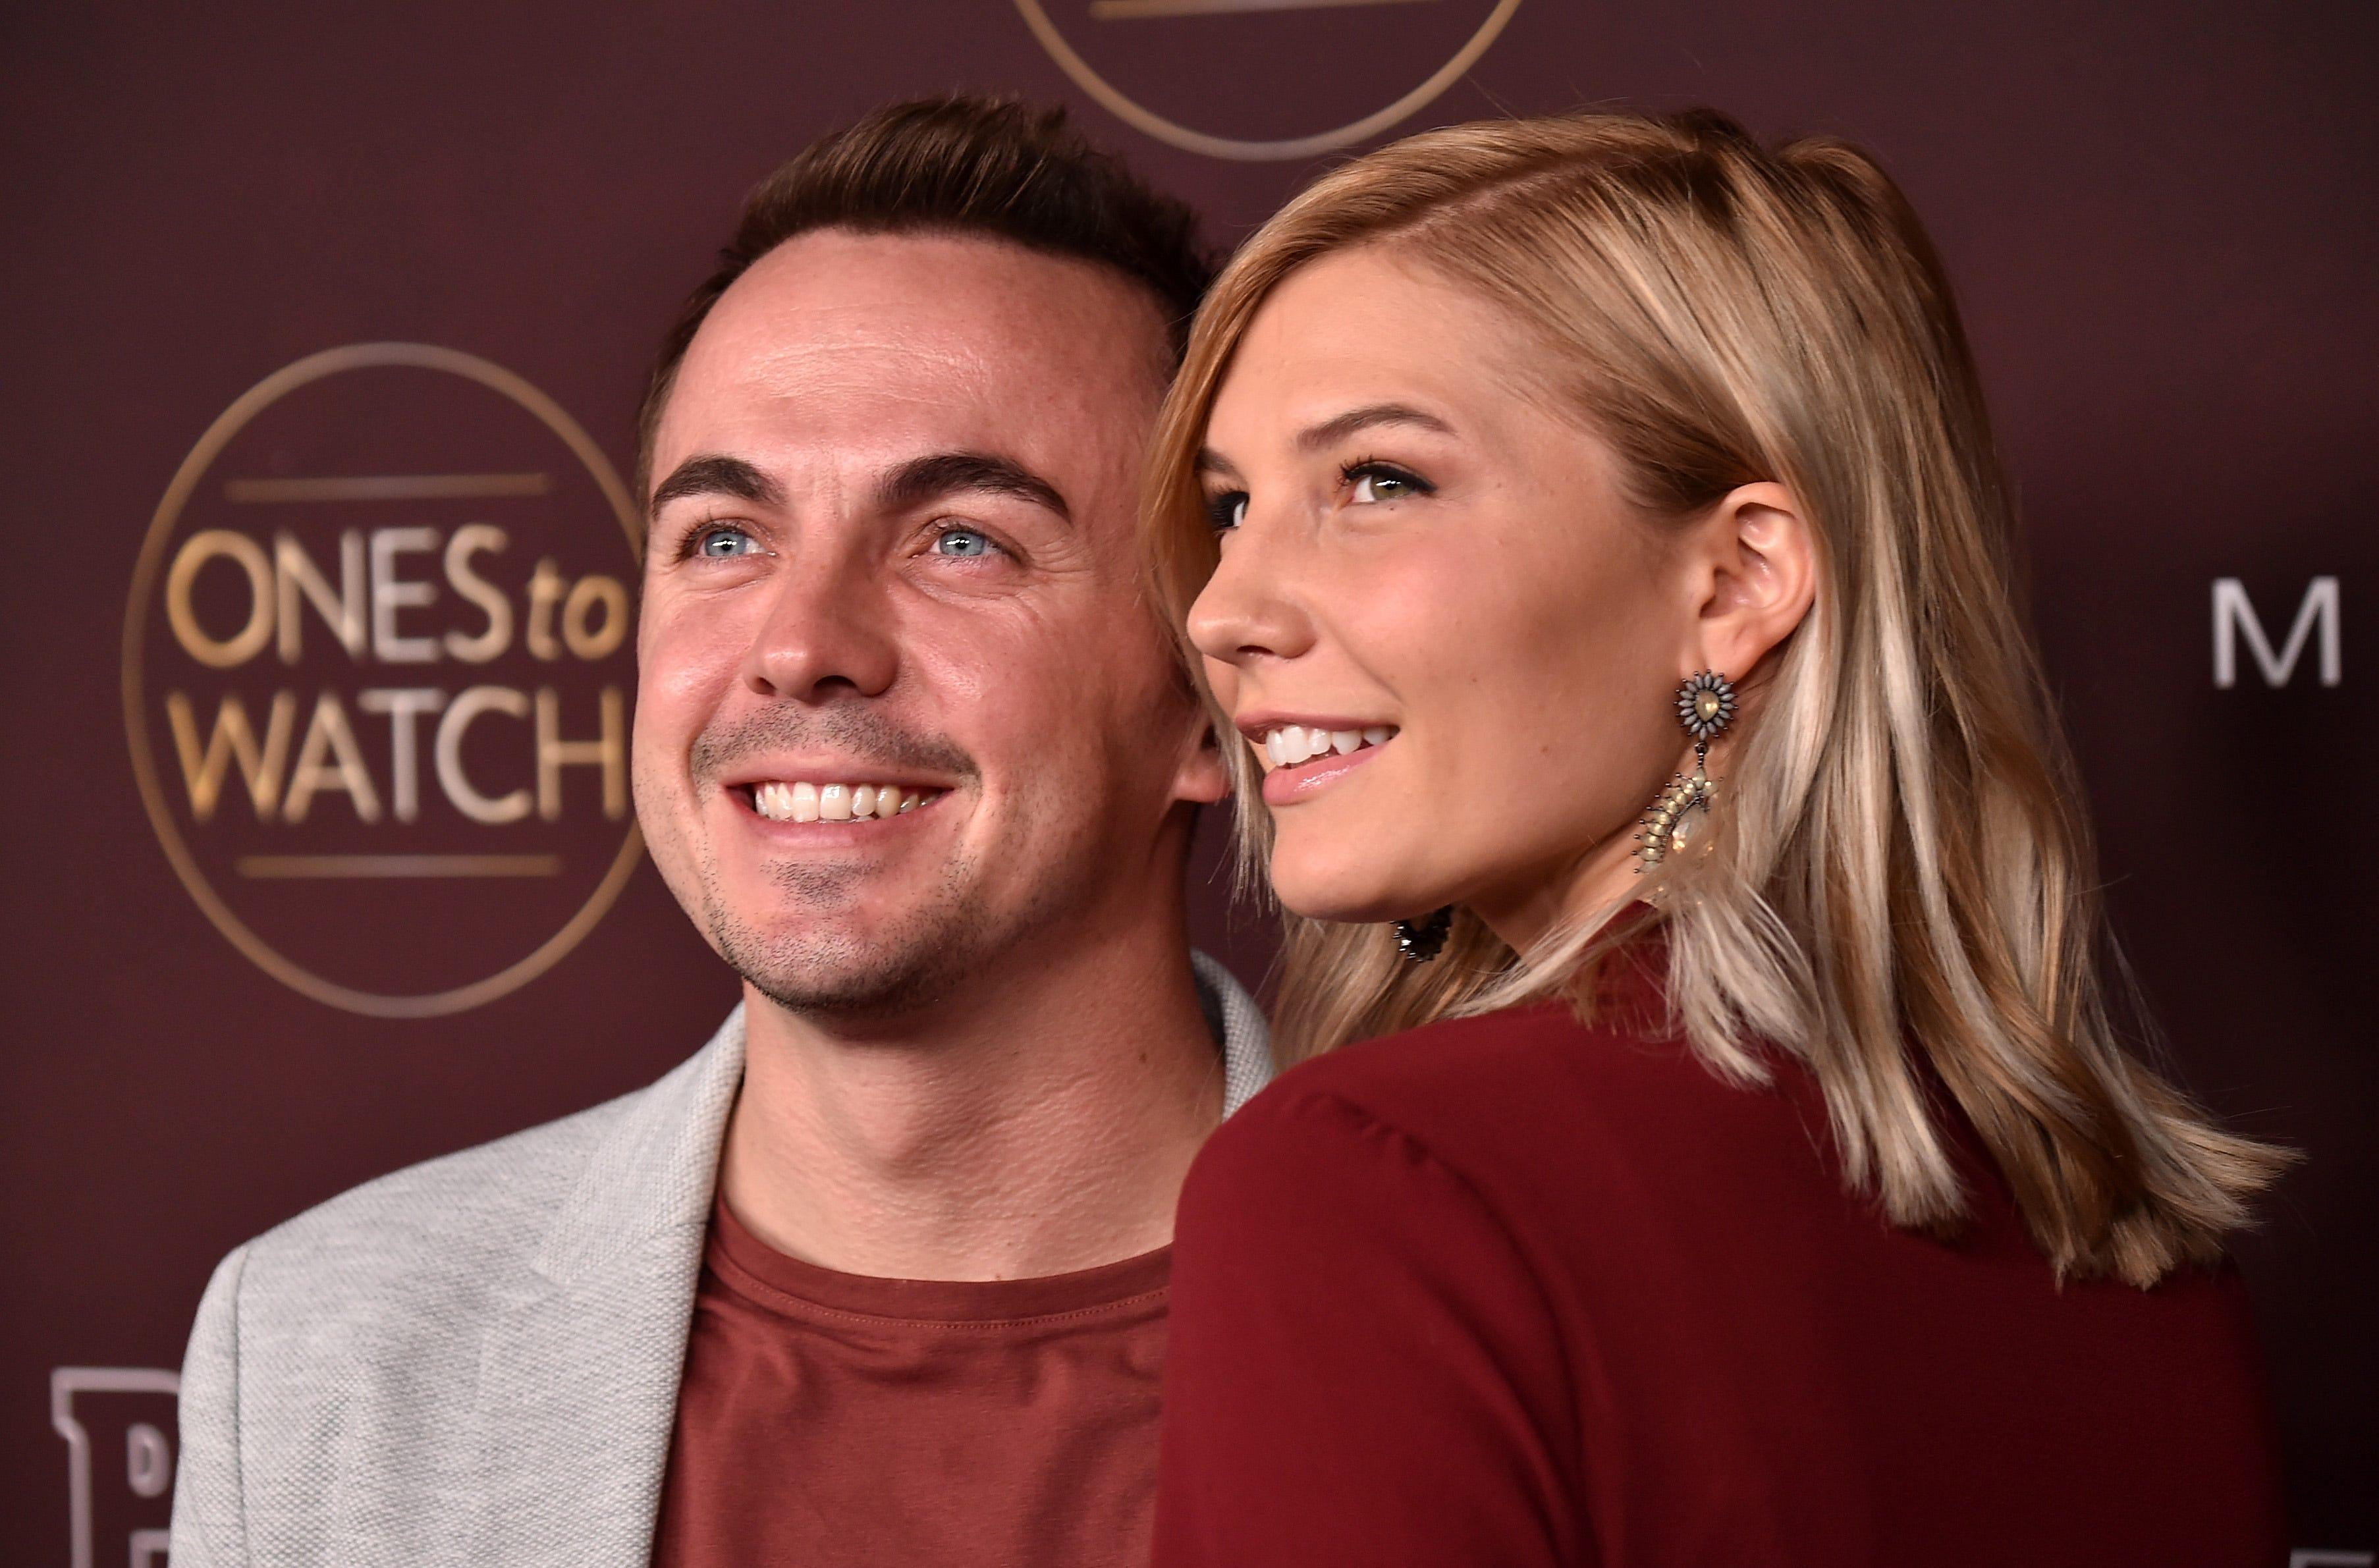 'A real-life miracle': Frankie Muniz, Paige Price announce they're expecting their first baby